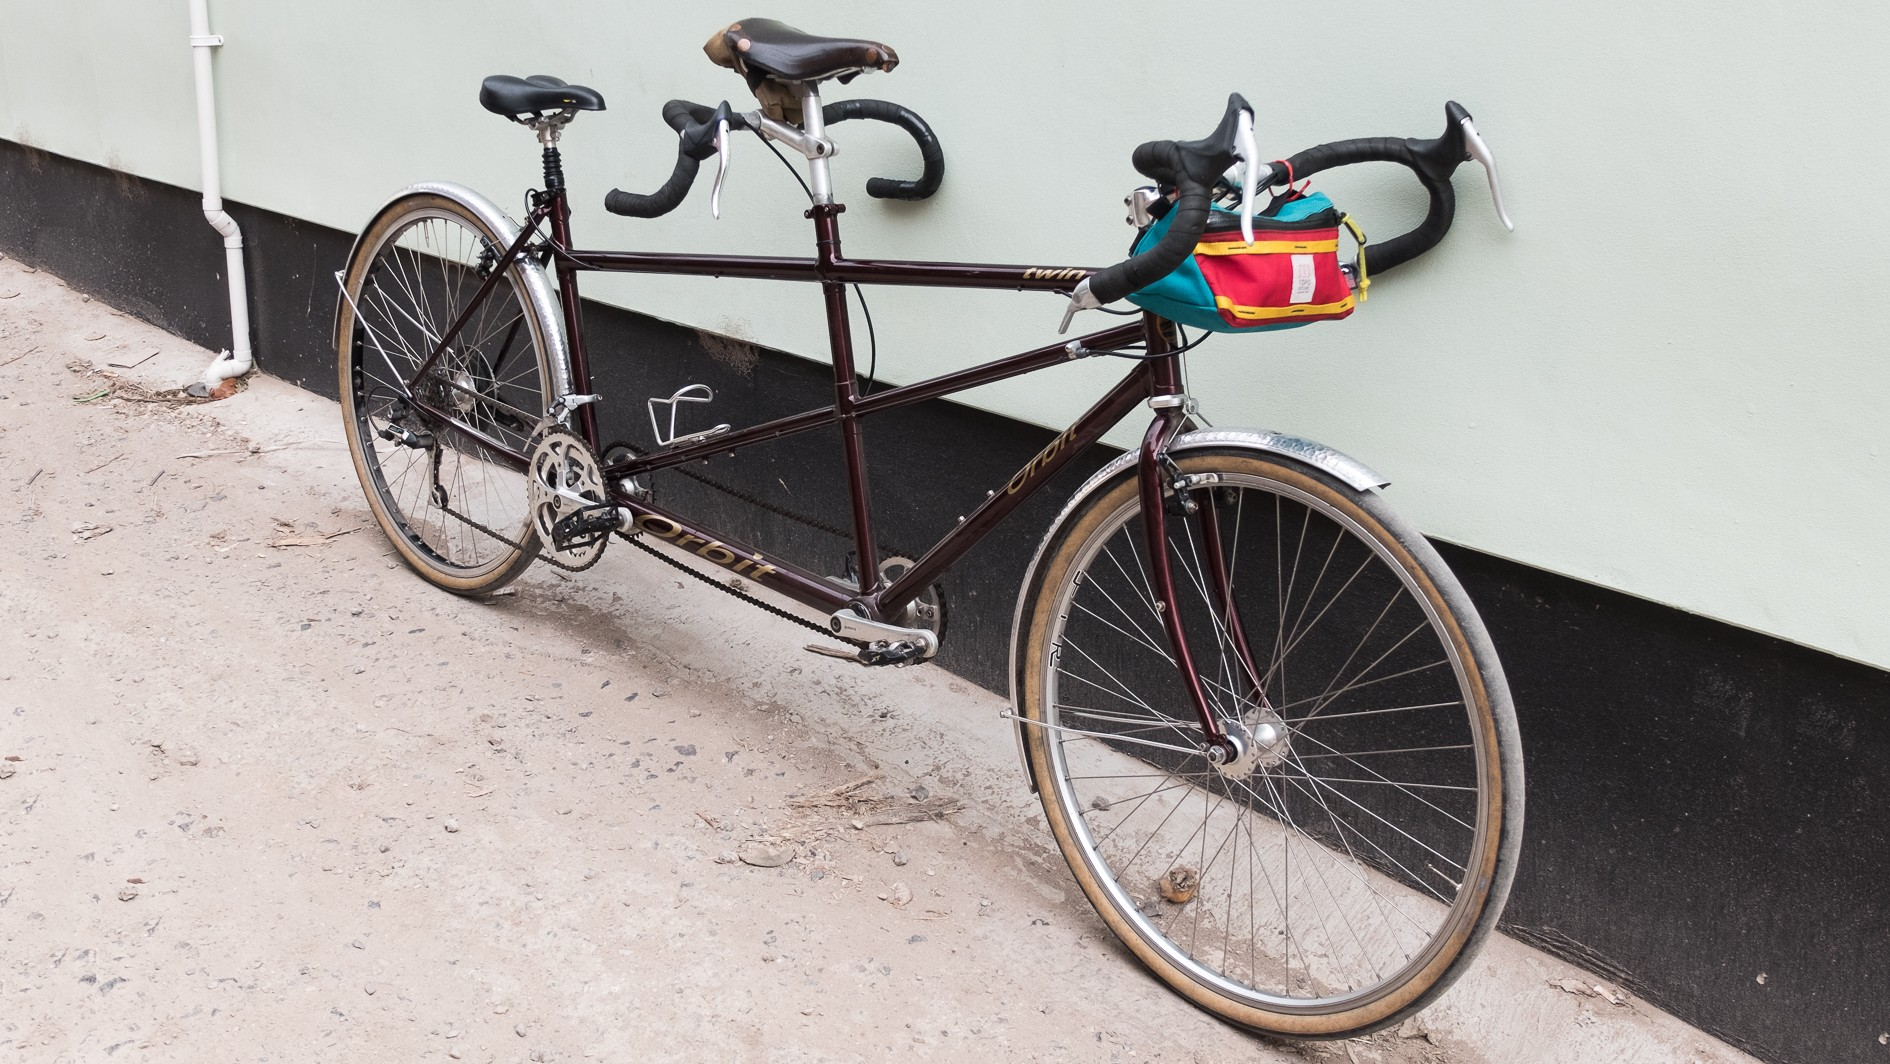 We picked up this Orbit Twin tandem for a song